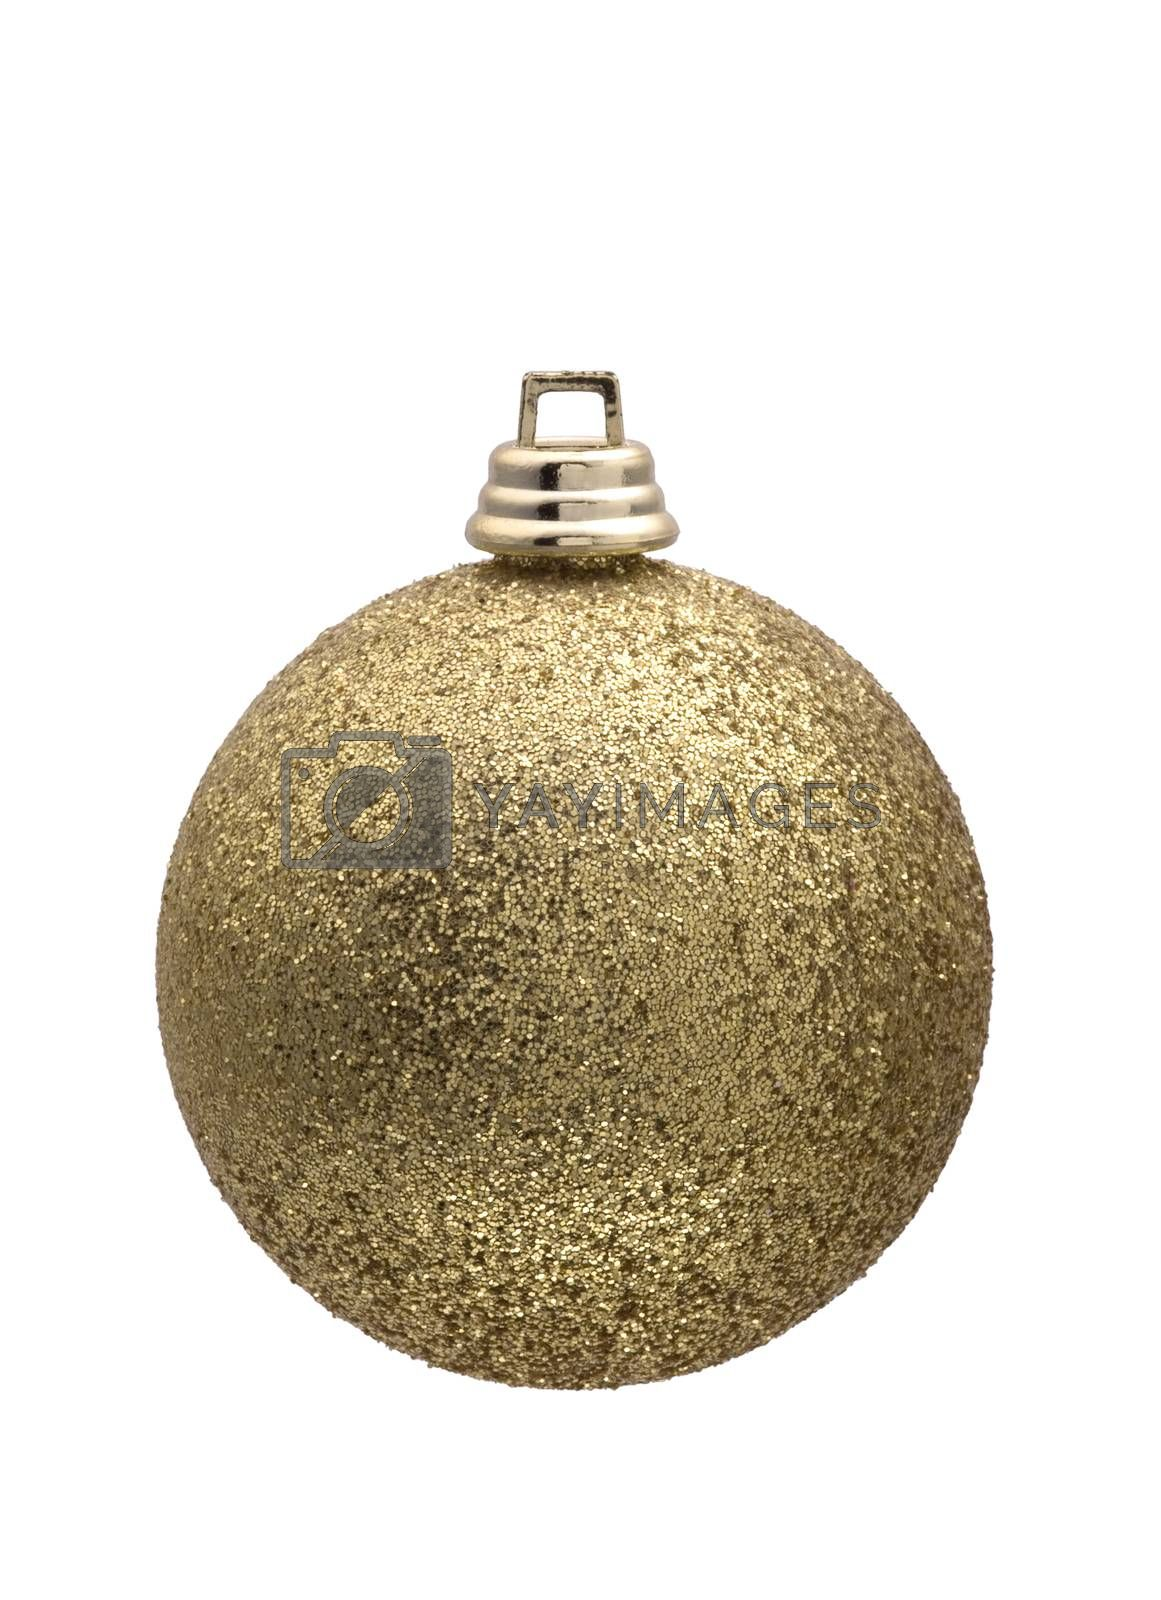 Royalty free image of golden christmas ball by phortcach